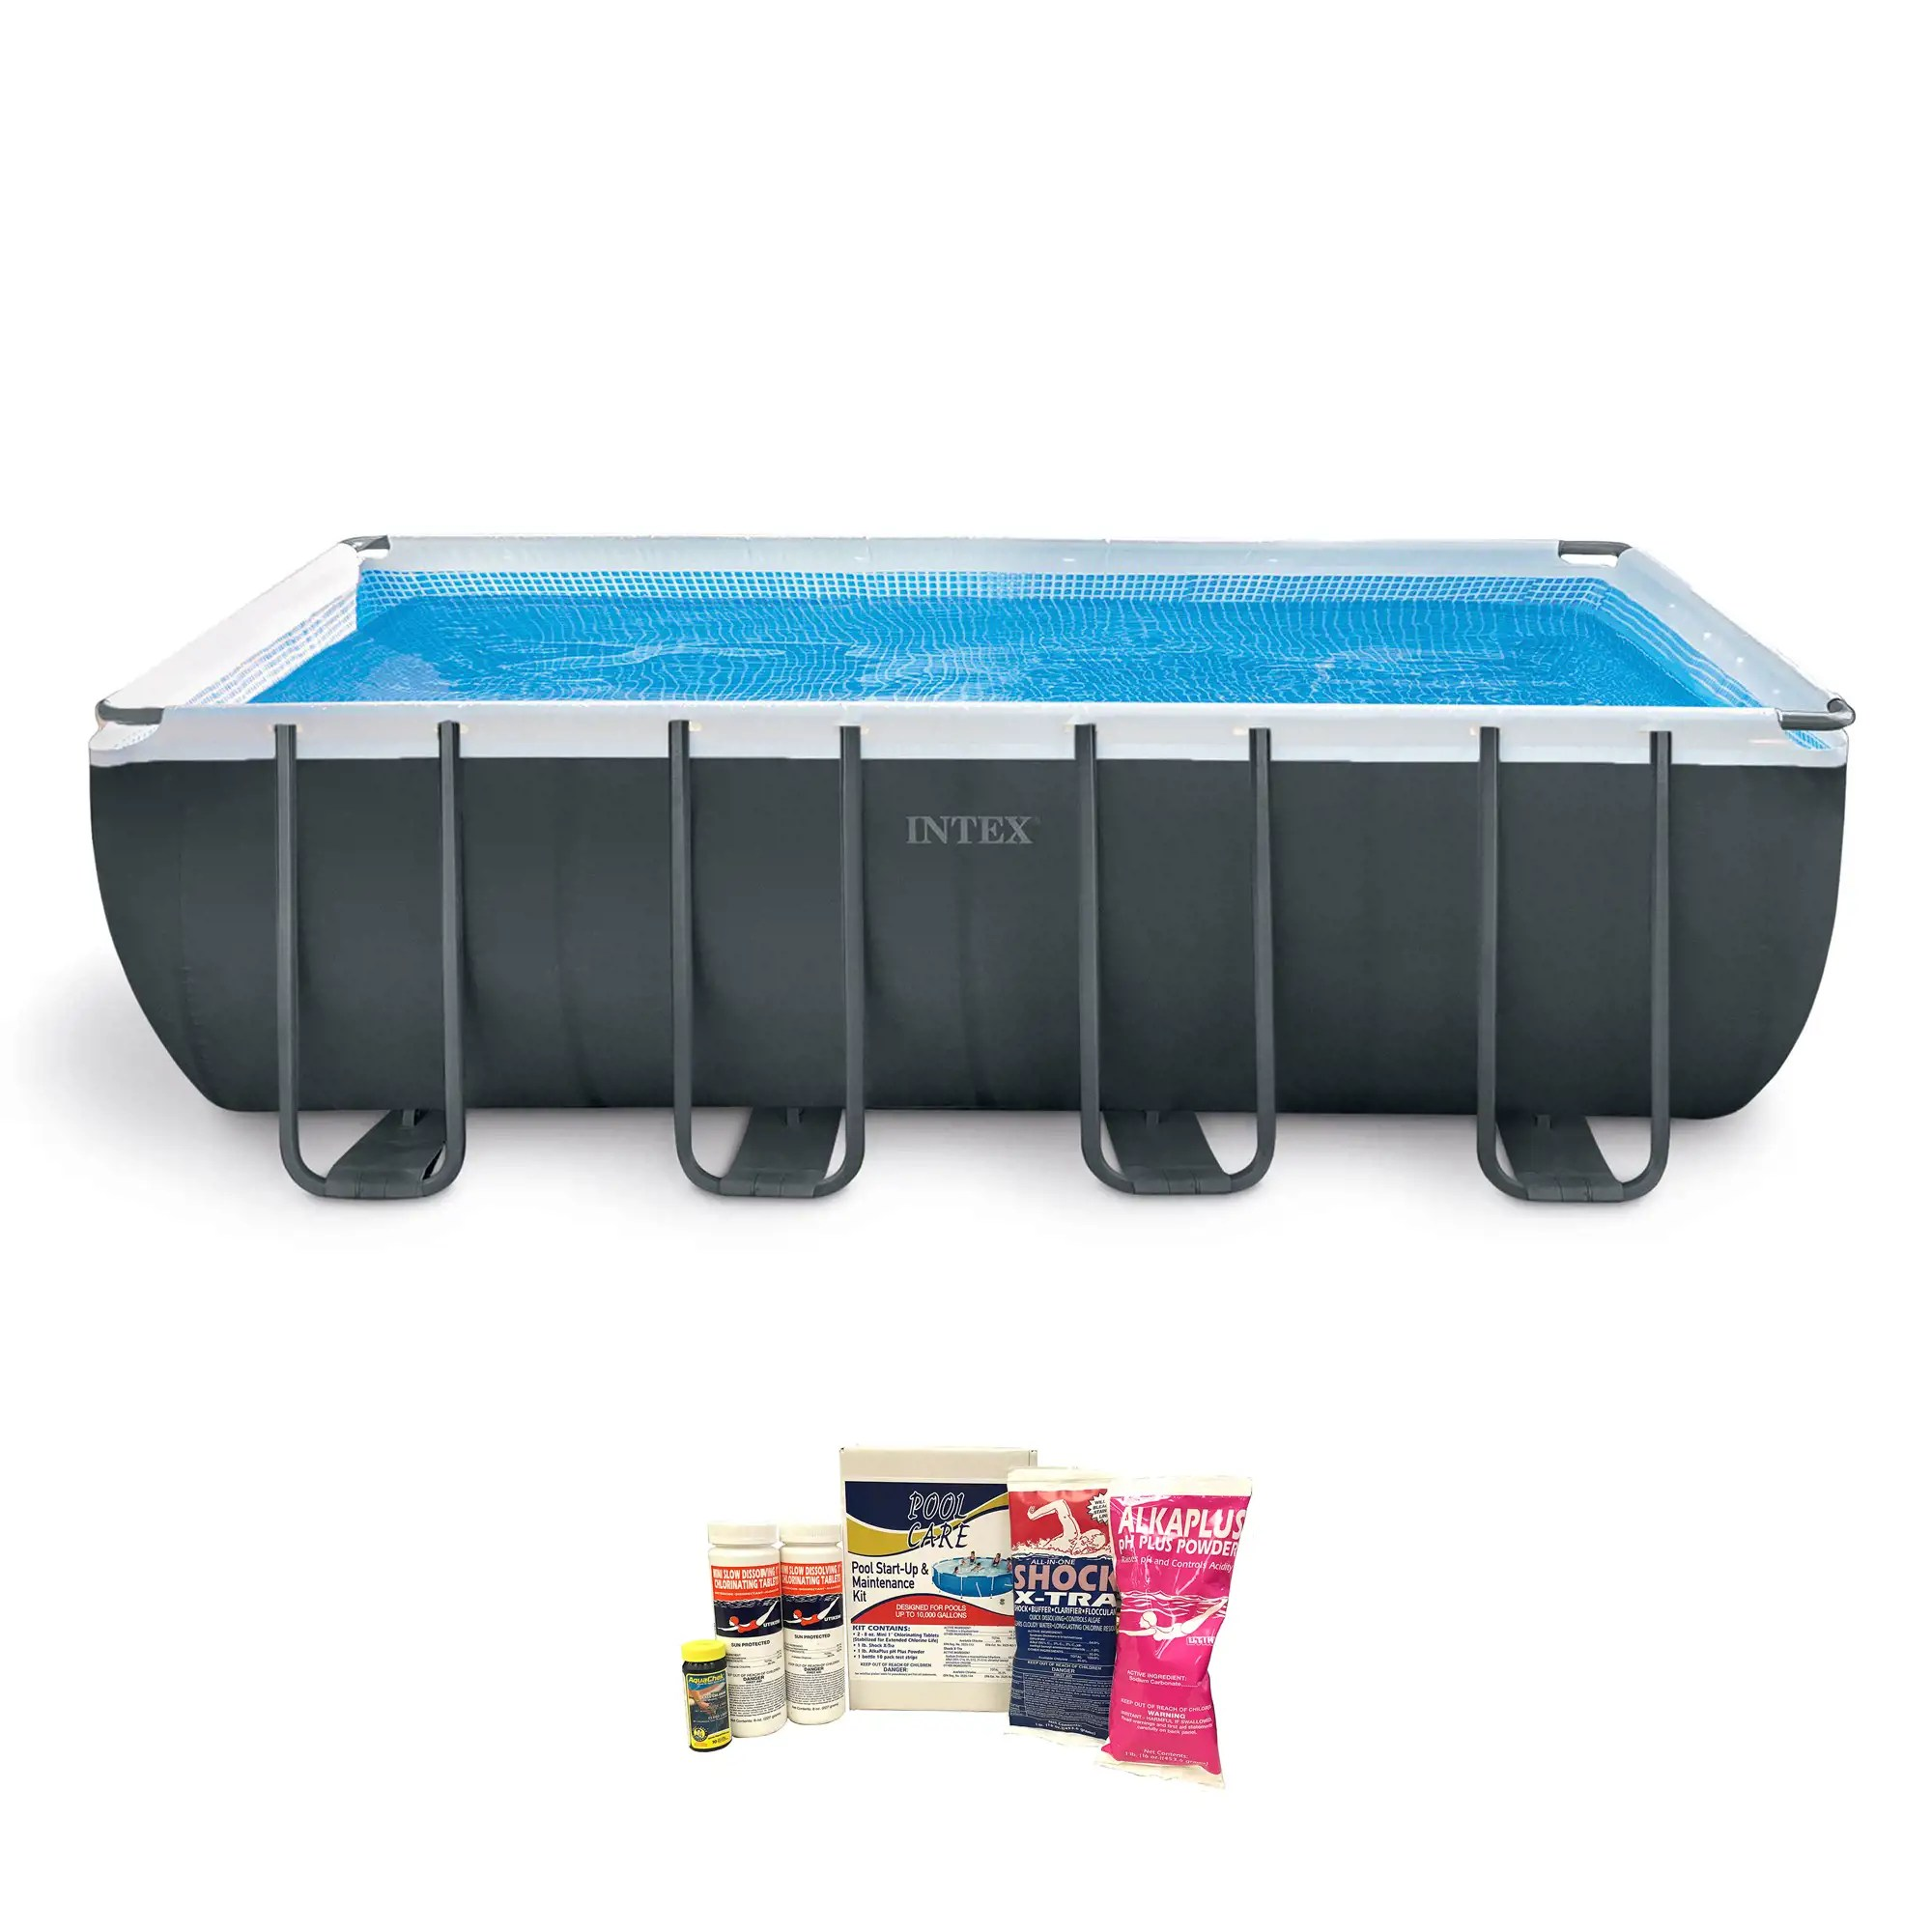 Intex Vs Bestway Review Intex Ultra 18 Foot Xtr Frame Pool W Pump Chemical Cleaning Kit